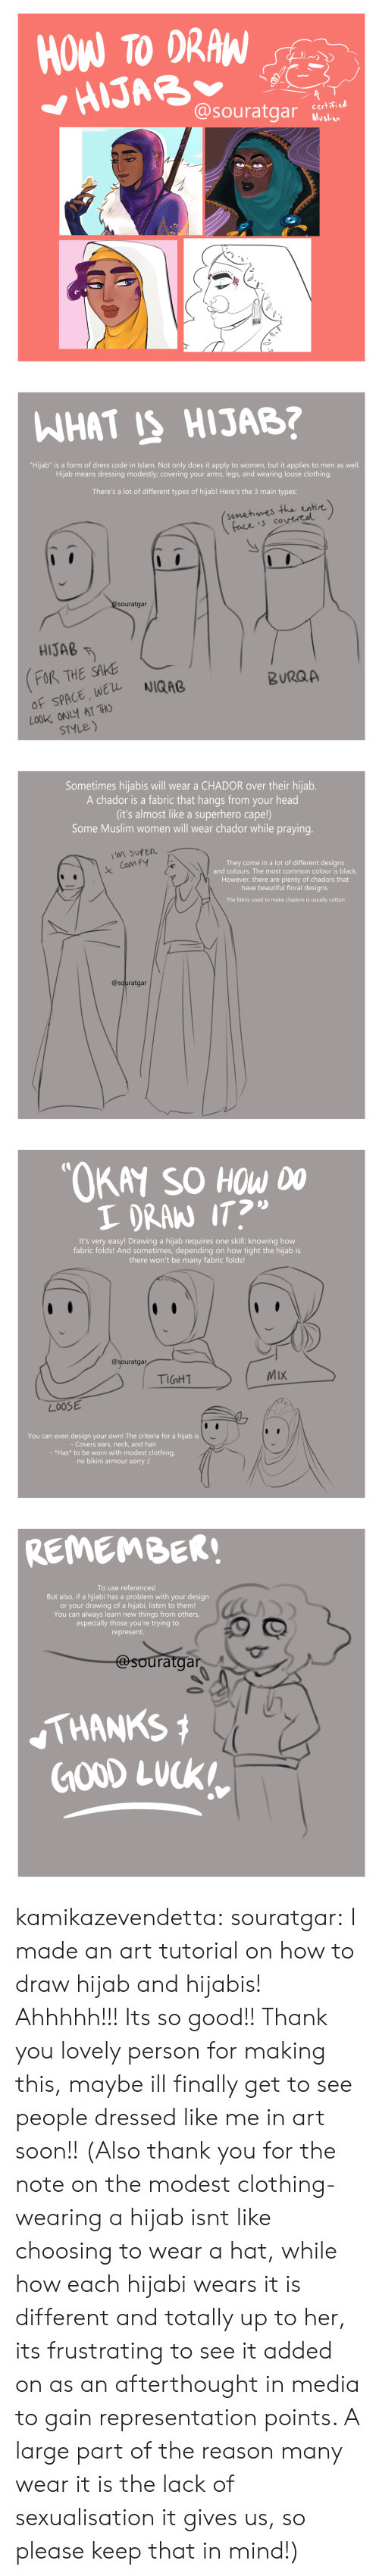 "Types Of: HOW TO DRAW  HIJAB  @souratgar  certified  Muslim   WHAT IS HIJAB?  ""Hijab"" is a form of dress code in Islam. Not only does it apply to women, but it applies to men as well.  Hijab means dressing modestly; covering your arms, legs, and wearing loose clothing.  There's a lot of different types of hijab! Here's the 3 main types:  (somehimes the entire)  face is covereel  @Souratgar  HIJAB  FOR THE SAKE  OF SPACE, WEL  LOOK ONLY AT THO  STYLE)  NIQAB  BURQA   Sometimes hijabis will wear a CHADOR over their hijab.  A chador is a fabric that hangs from your head  (it's almost like a superhero cape!)  Some Muslim women will wear chador while praying.  M SUPER  They come in a lot of different designs  and colours. The most common colour is black.  Com FY  However, there are plenty of chadors that  have beautiful floral designs.  The fabric used to make chadors is usually cotton.  @souratgar   ""OKAY SO HOW DO  I DRAN IT?  It's very easy! Drawing a hijab requi res one skill: knowing how  fabric folds! And sometimes, depending on how tight the hijab is  there won't be many fabric folds!  @souratgar  MIX  TIGHT  LOOSE  You can even design your own! The criteria for a hijab is  - Covers ears, neck, and hair  - *Has* to be worn with modest clothing,  no bikini armour sorry :(   REMEMBER!  To use references!  But also, if a hijiabi has a problem with your design  or your drawing of a hijabi, listen to them!  You can always learn new things from others,  especially those you're trying to  represent.  @souratgar  THANKS  GOOD LUCK kamikazevendetta:  souratgar: I made an art tutorial on how to draw hijab and hijabis! Ahhhhh!!! Its so good!! Thank you lovely person for making this, maybe ill finally get to see people dressed like me in art soon!!   (Also thank you for the note on the modest clothing- wearing a hijab isnt like choosing to wear a hat, while how each hijabi wears it is different and totally up to her, its frustrating to see it added on as an afterthought in media to gain representation points. A large part of the reason many wear it is the lack of sexualisation it gives us, so please keep that in mind!)"